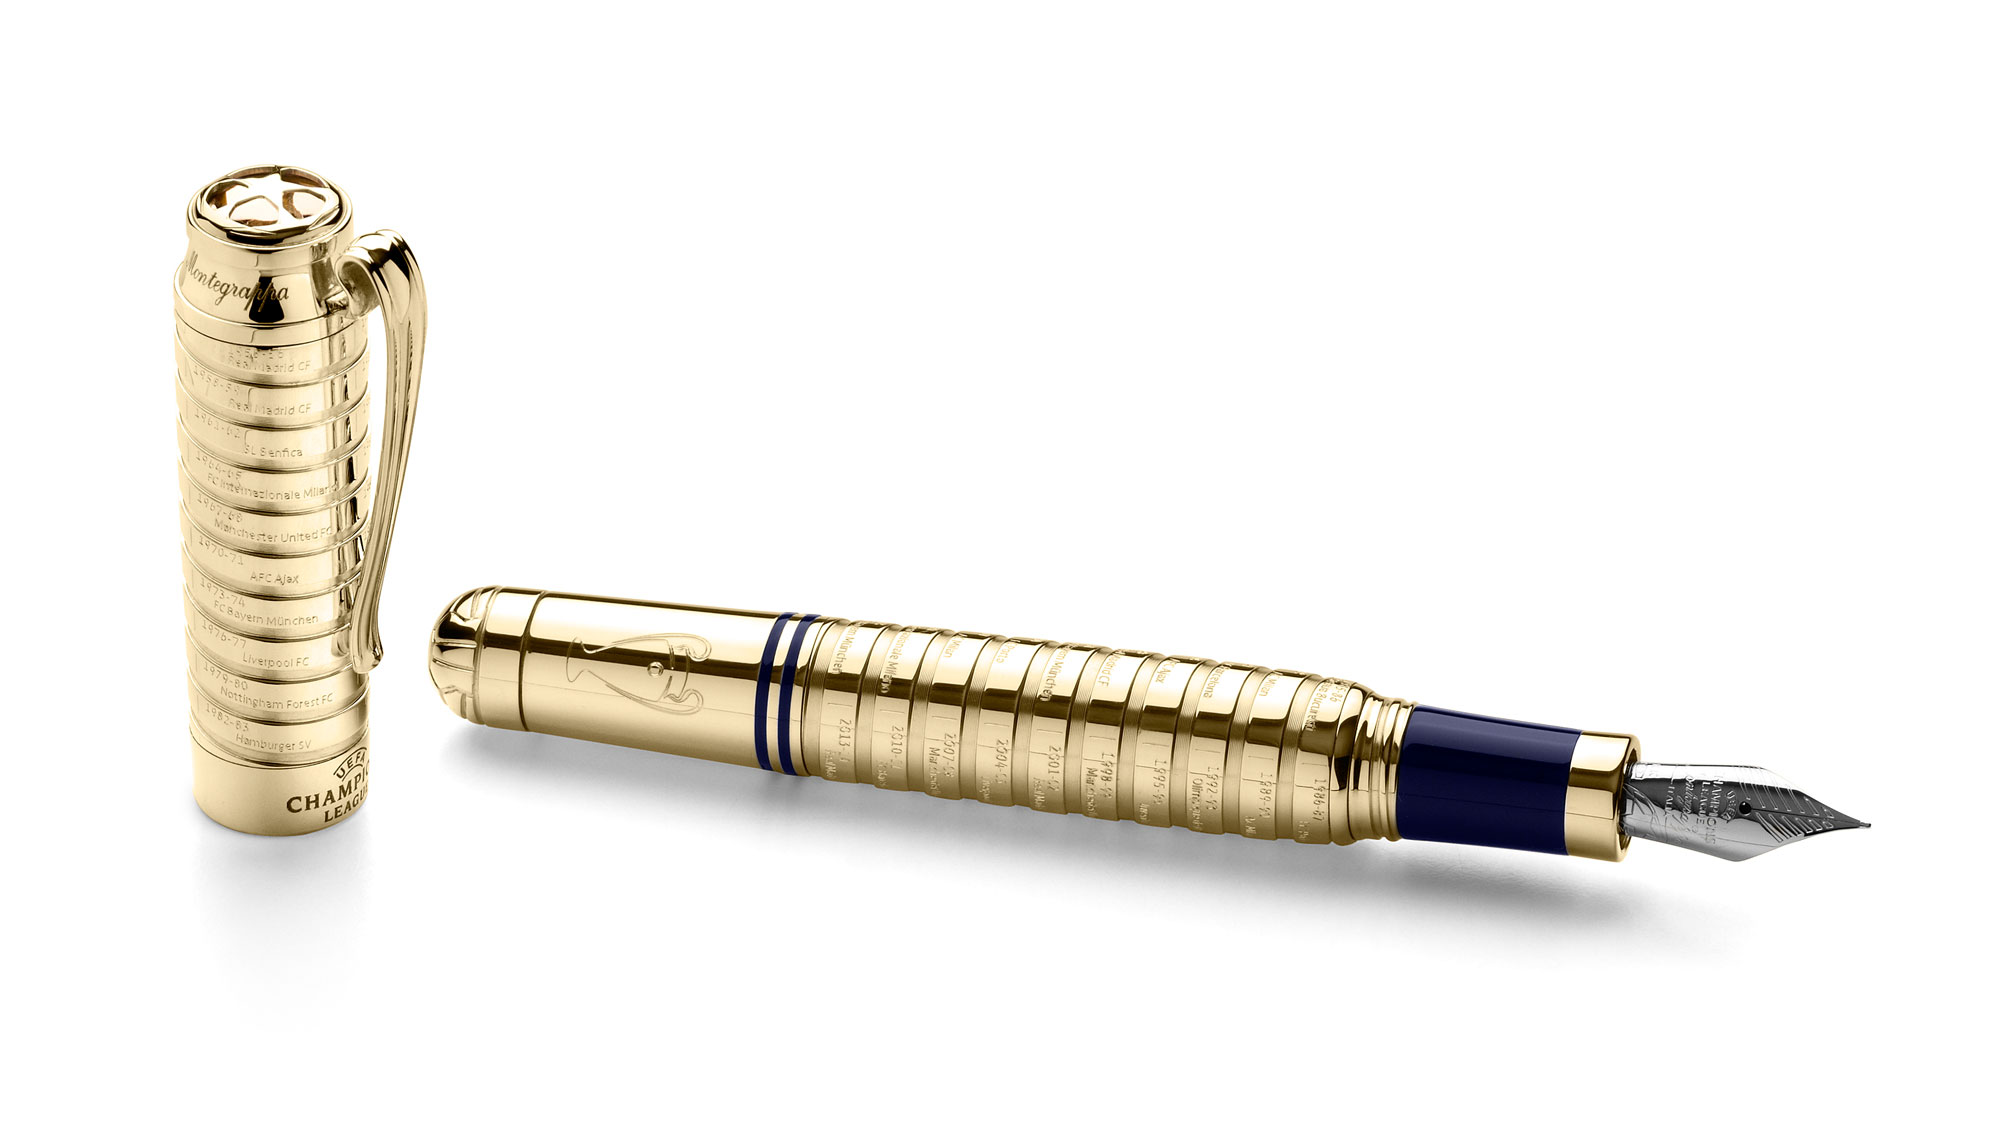 Montegrappa launch new UEFA Champions League pen collection 4